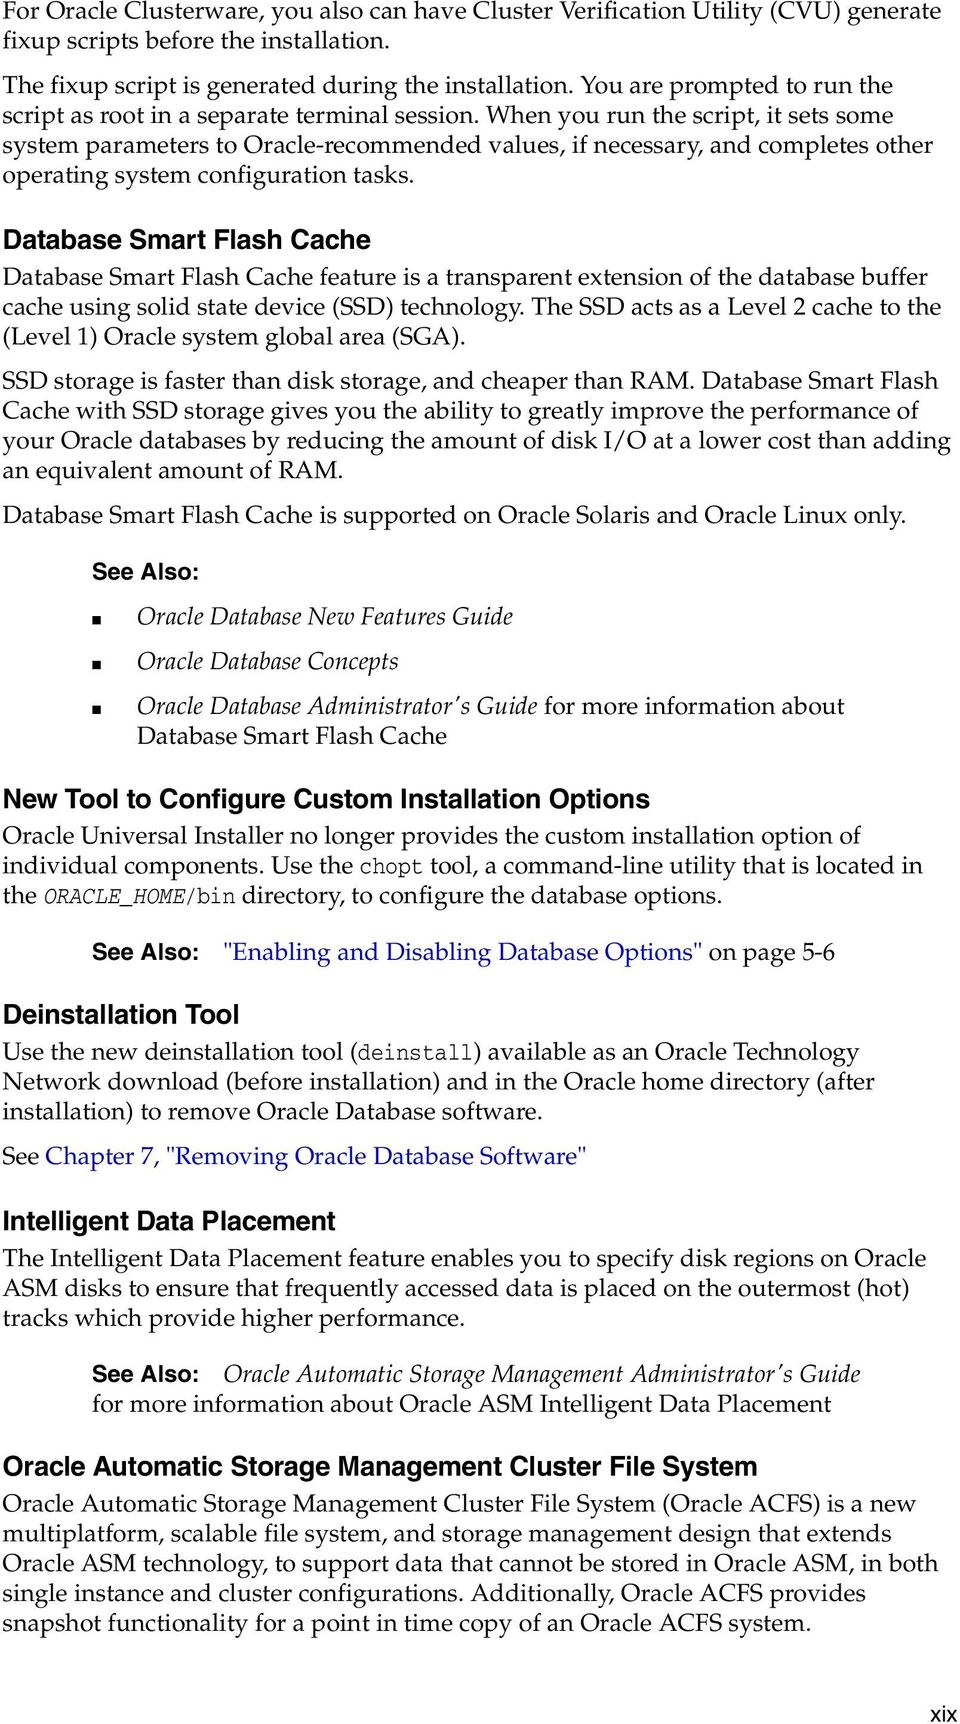 Installation Guide 11g Release 2 (11 2) for Linux - PDF